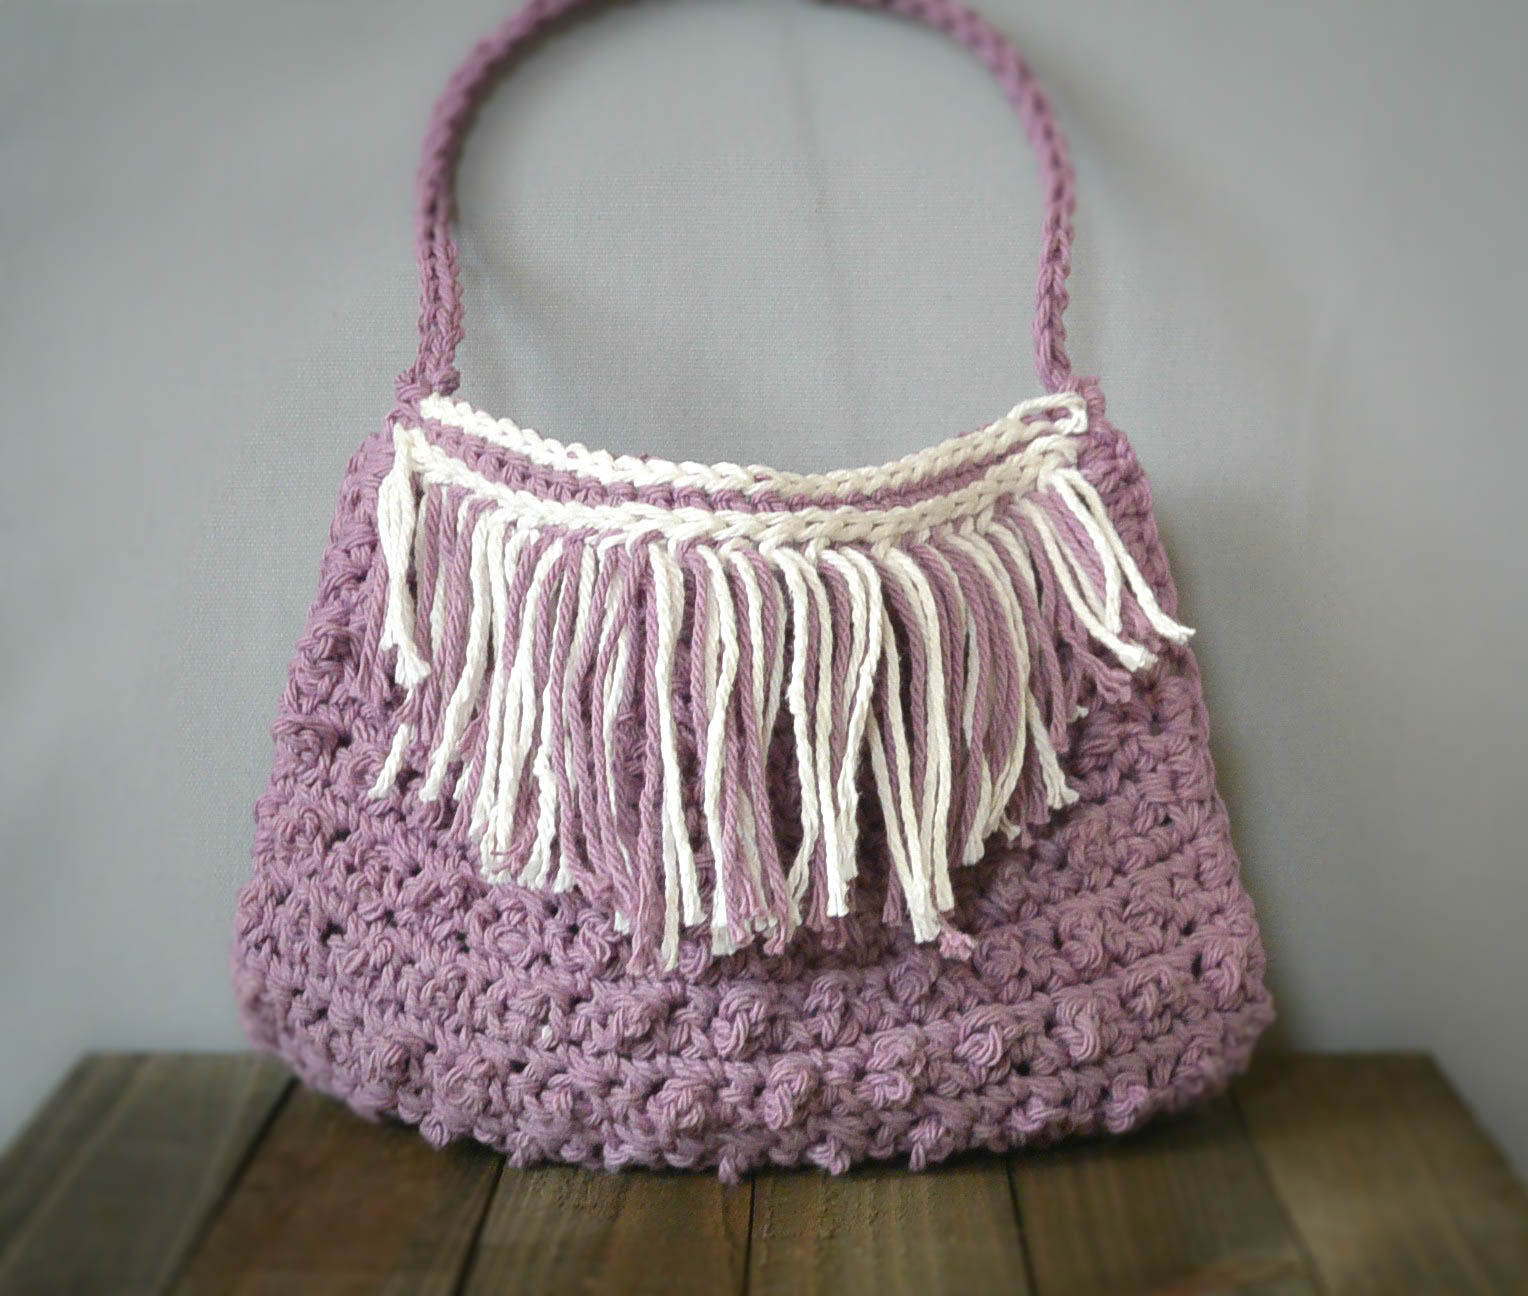 Crochet Fringe Bag : skeins Worsted Weight Cotton Yarn ( I used Lily Sugar N Cream in ...